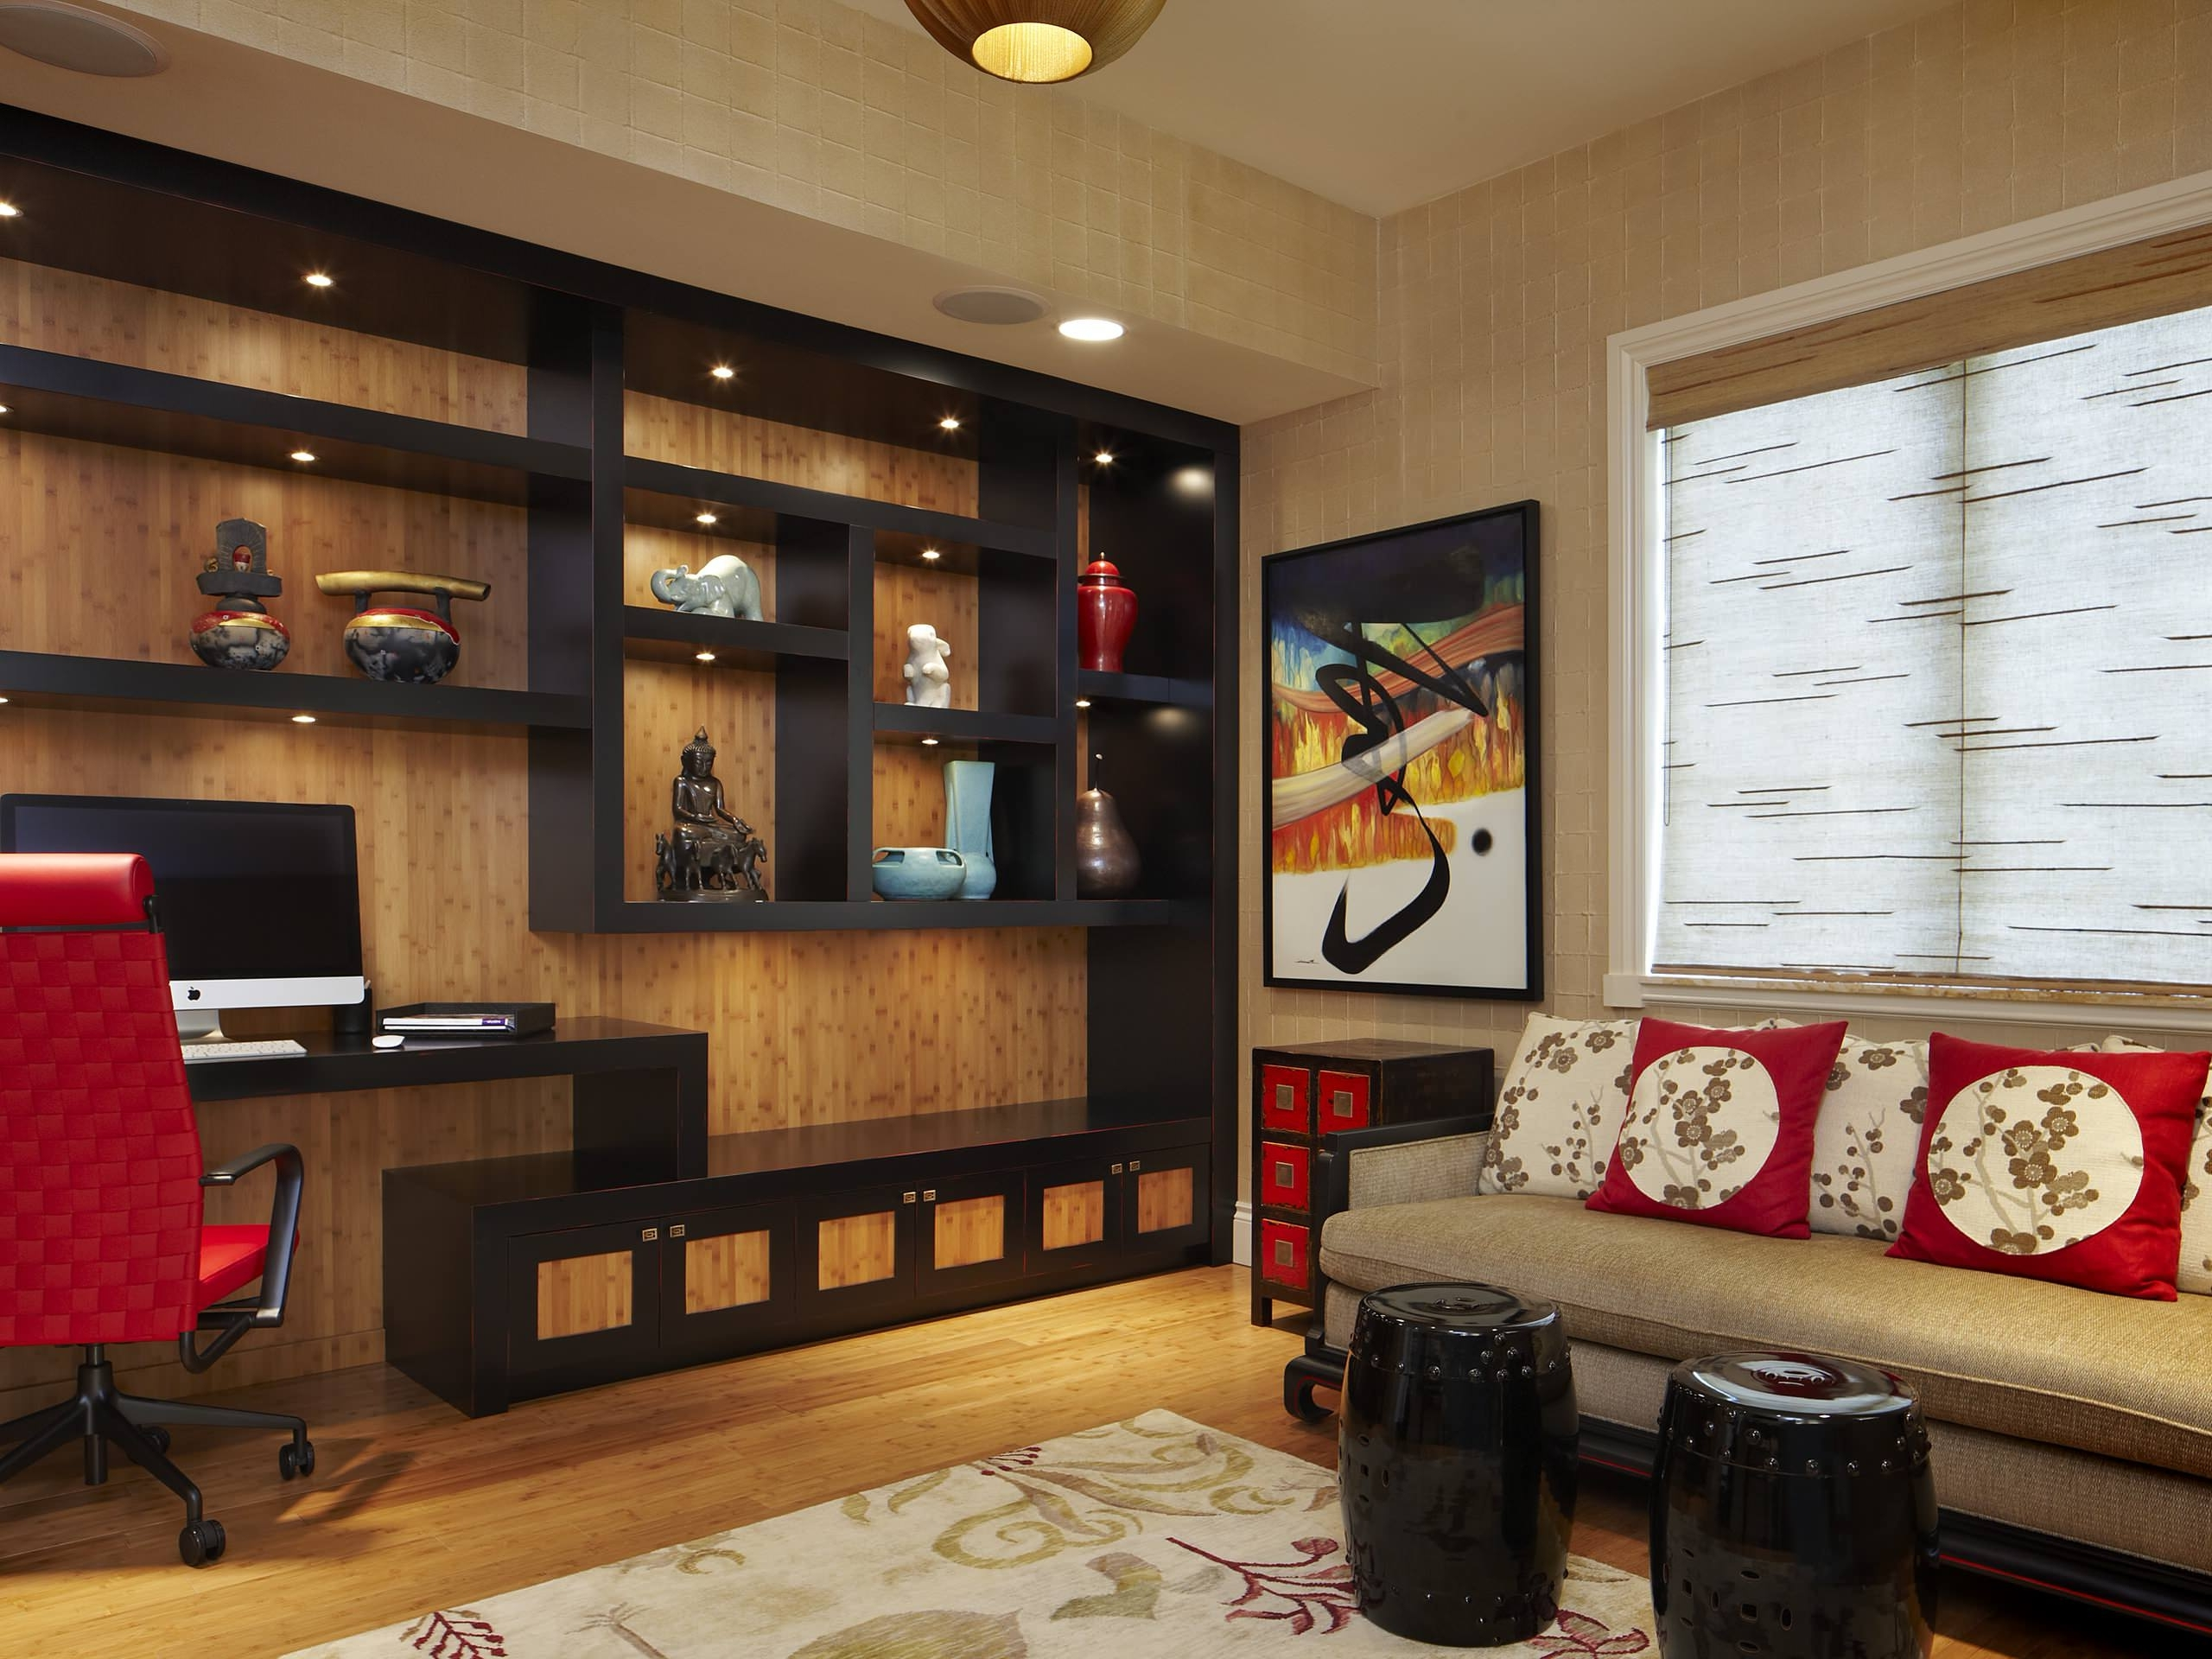 Home Design: Mid Century Modern Shelving With Masculine Wall Art With Well Known Masculine Wall Art (Gallery 9 of 15)